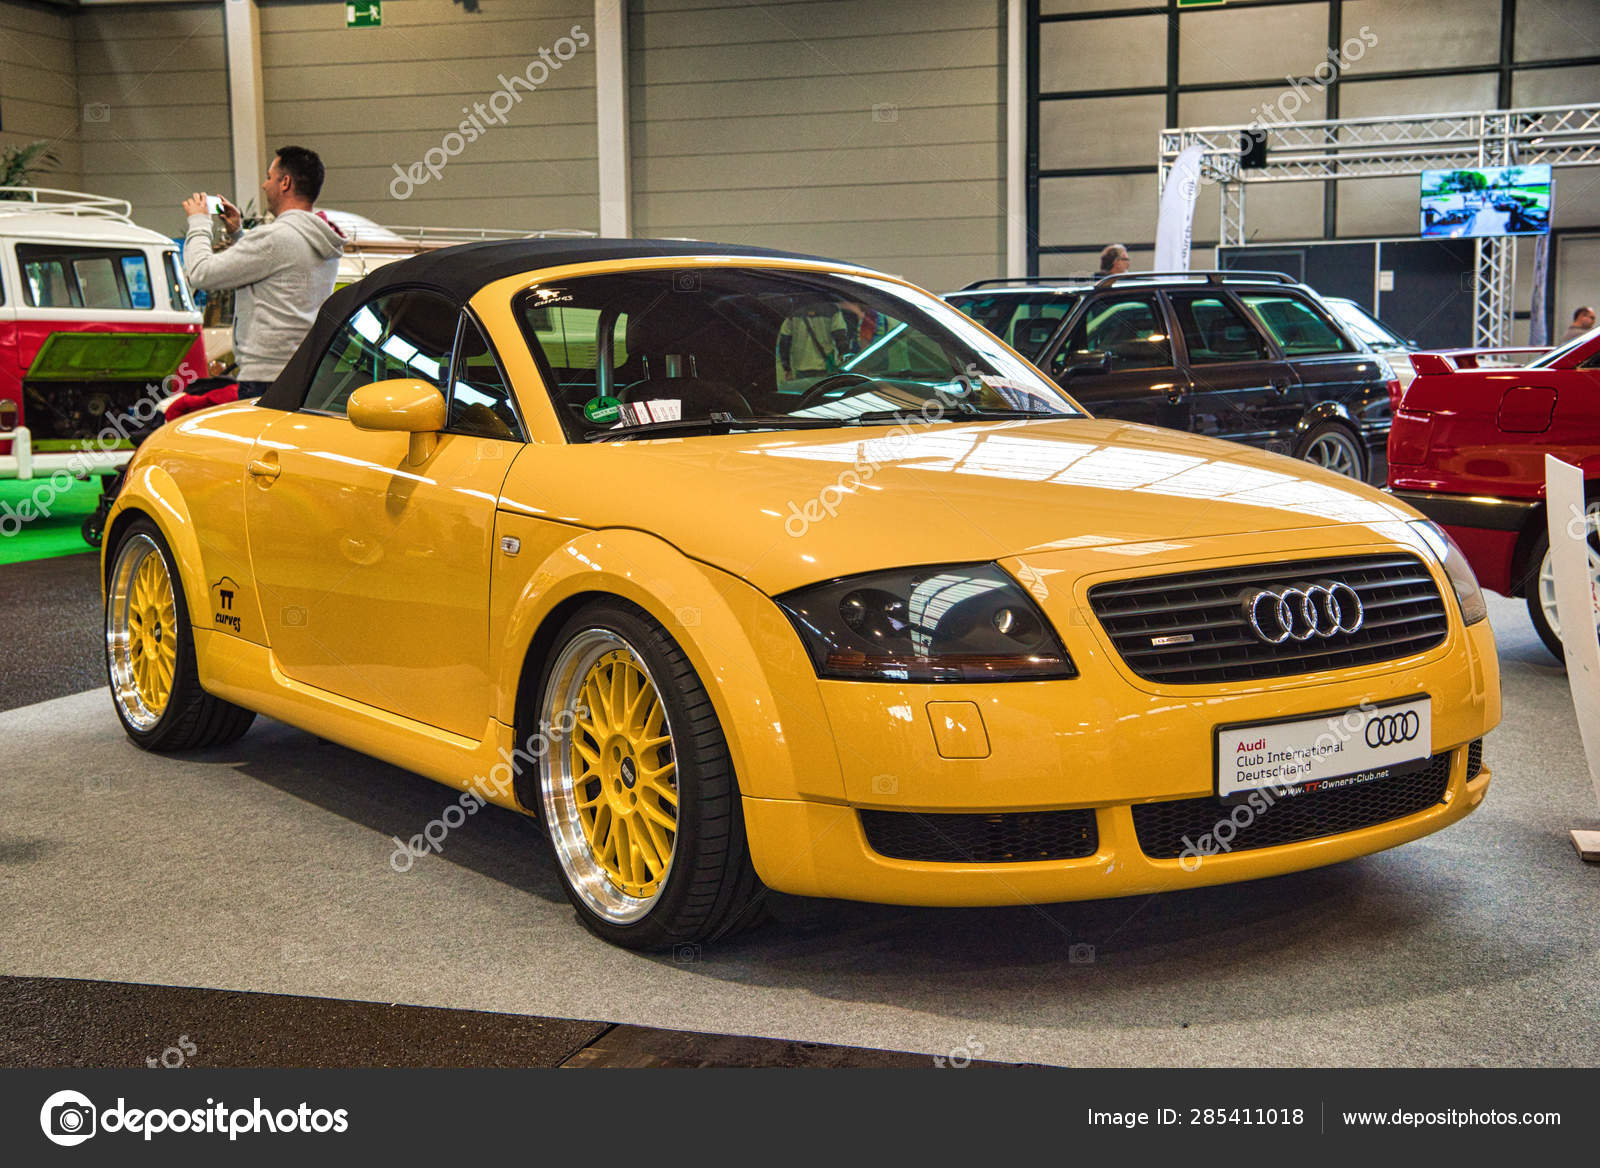 Friedrichshafen May 2019 Yellow Audi Tt Quattro Roadster Type 8n 1998 Sedan At Motorworld Classics Bodensee On May 11 2019 In Friedrichshafen Germany Stock Editorial Photo C Eagle2308 285411018